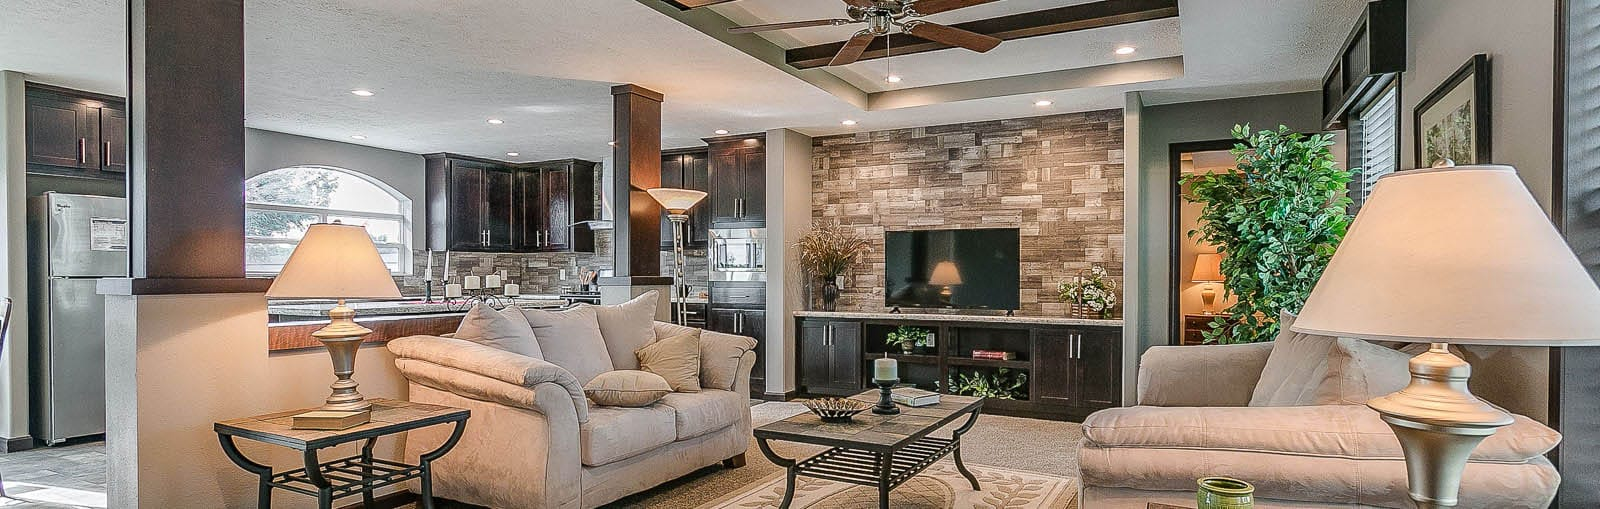 Adding An Air Conditioner To Your Home Centennial Homes